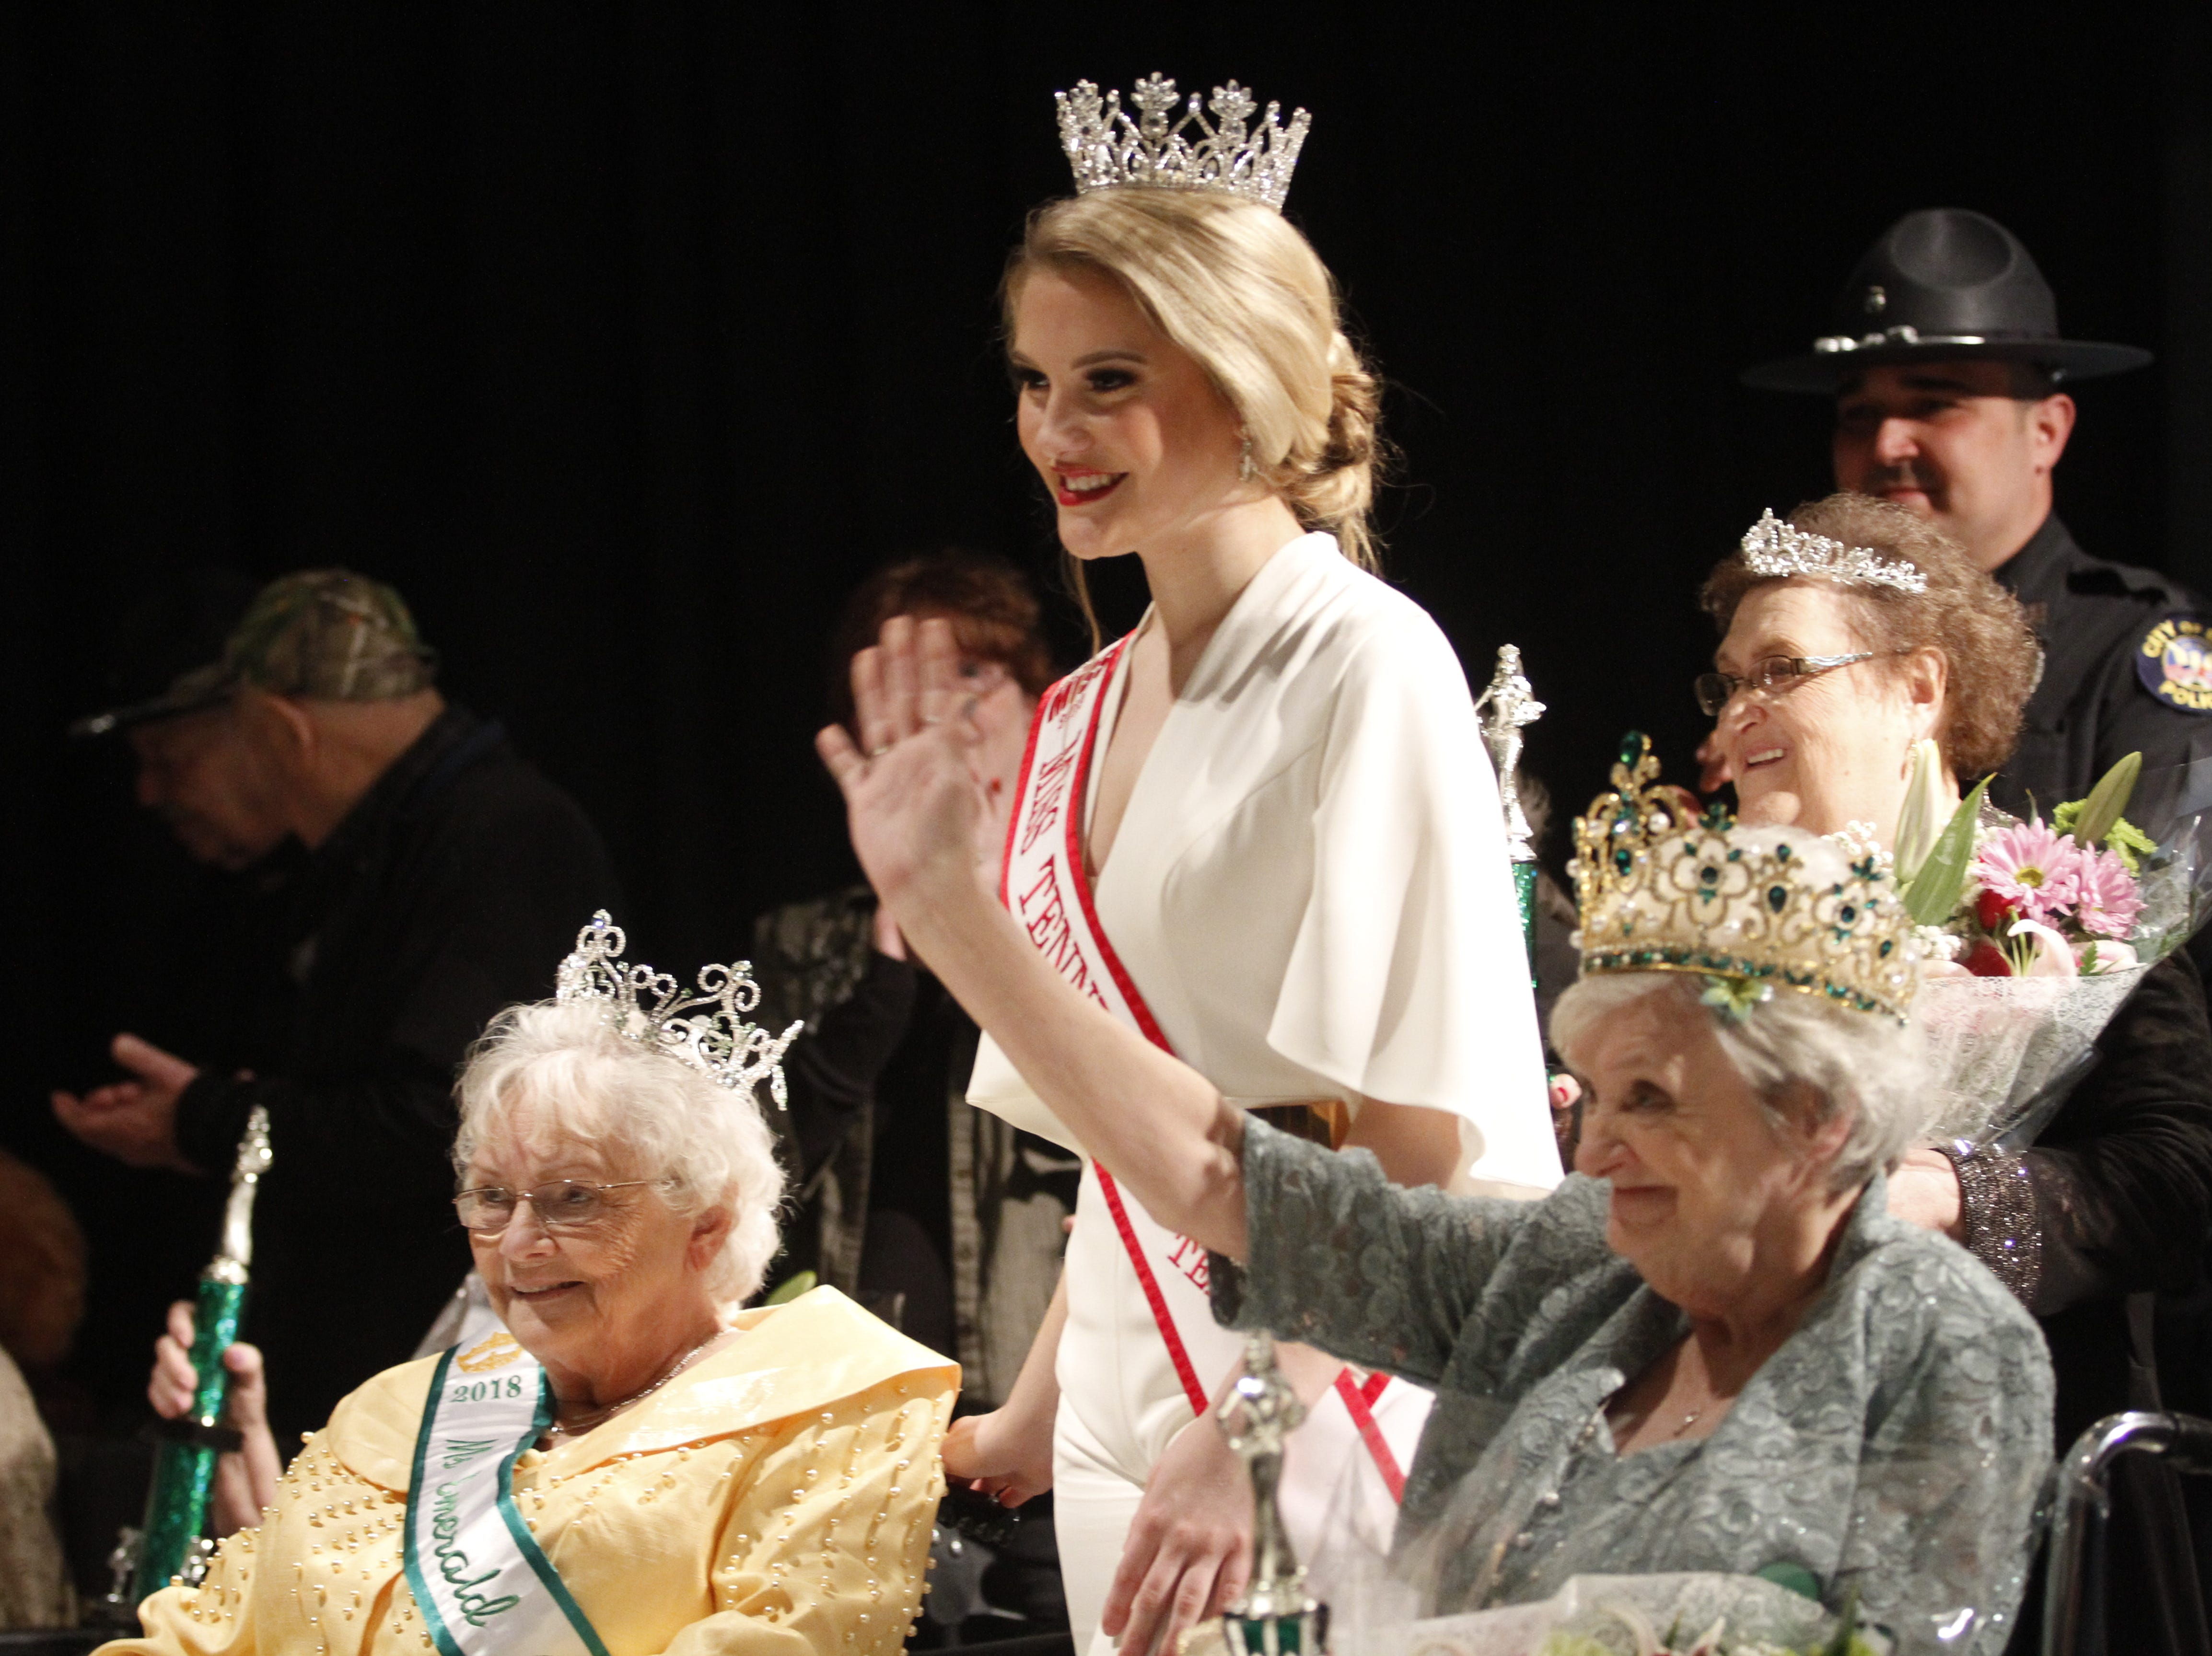 The final night of Houston County pageants for 2019, featured contestants in the Emerald Queen, Ms. and Miss Houston County competitions.